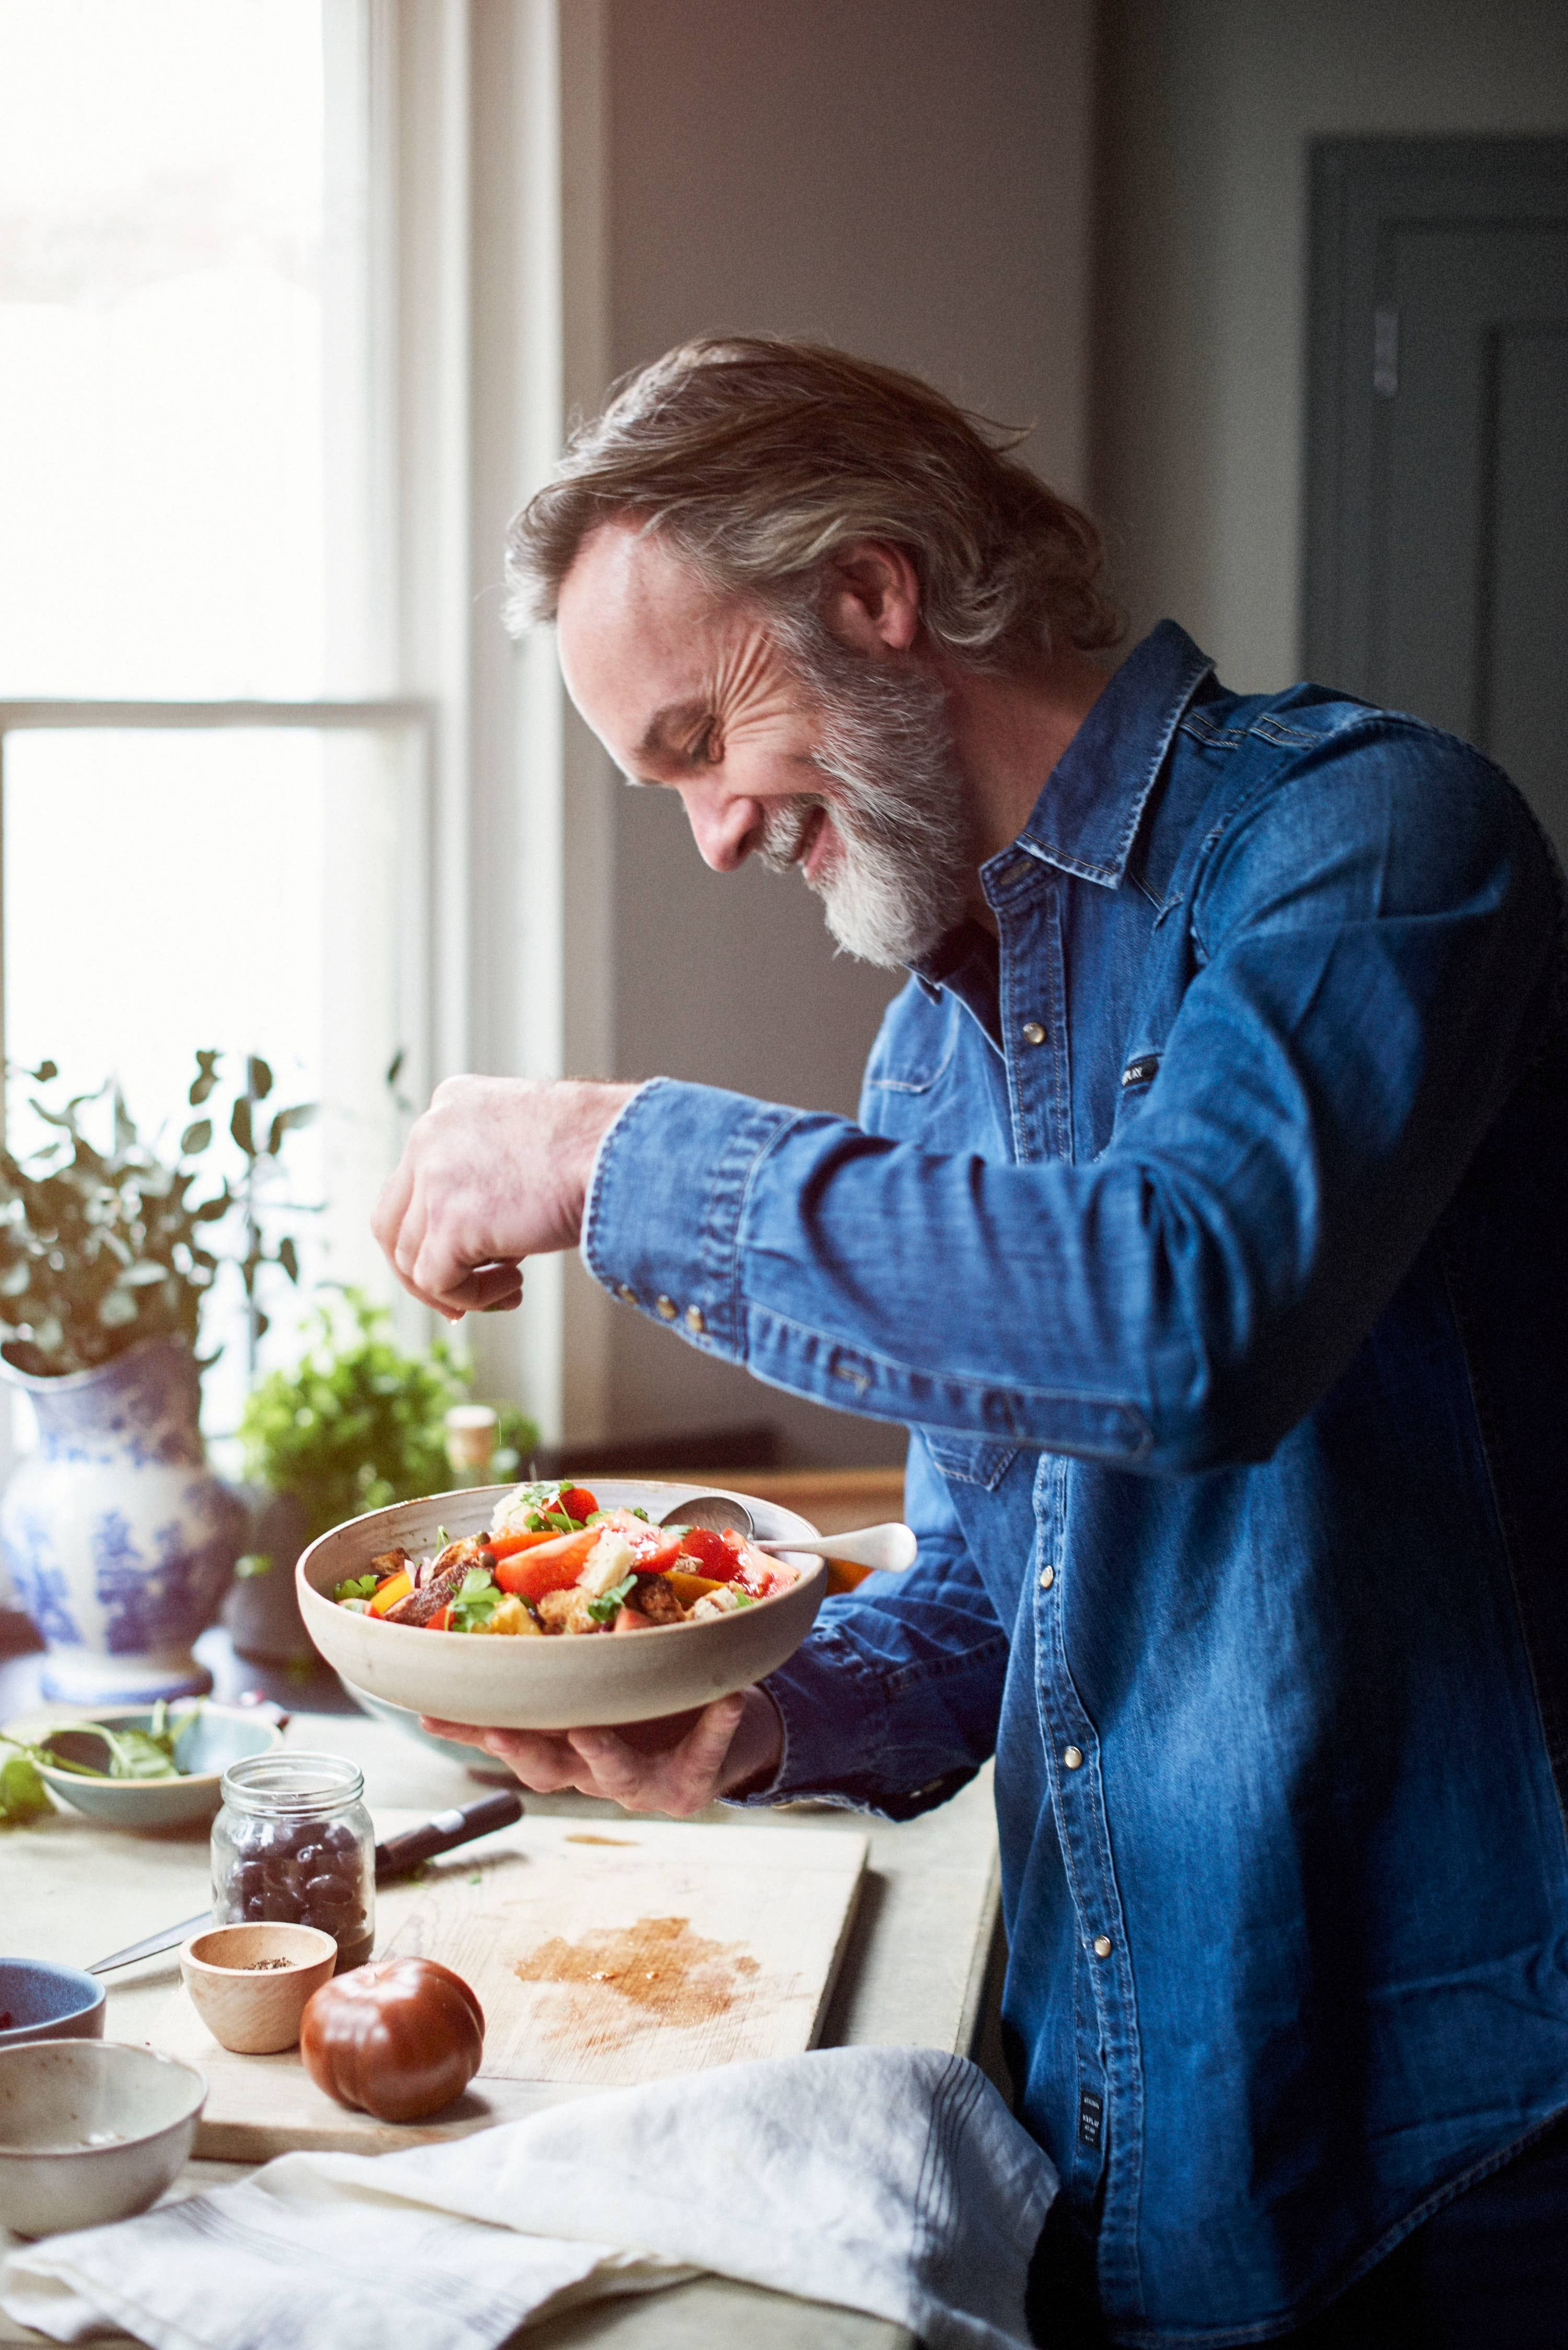 Marcus Wareing: 'We don't have money to waste – so don't waste food'